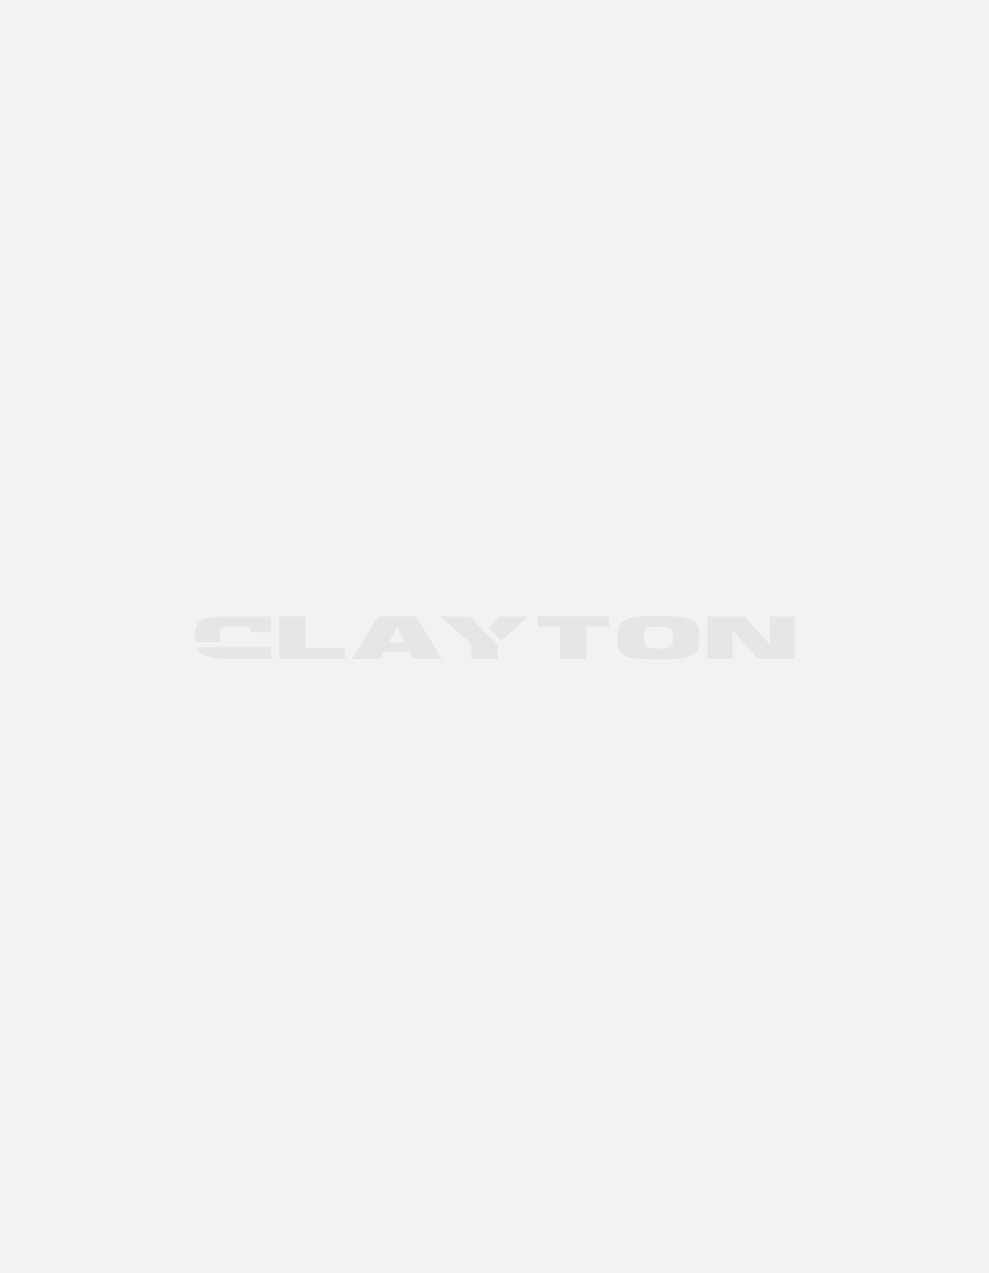 https://www.claytonitalia.com/media/catalog/product/cache/2/small_image/460x590/9df78eab33525d08d6e5fb8d27136e95/g/i/gift56_nt.jpg